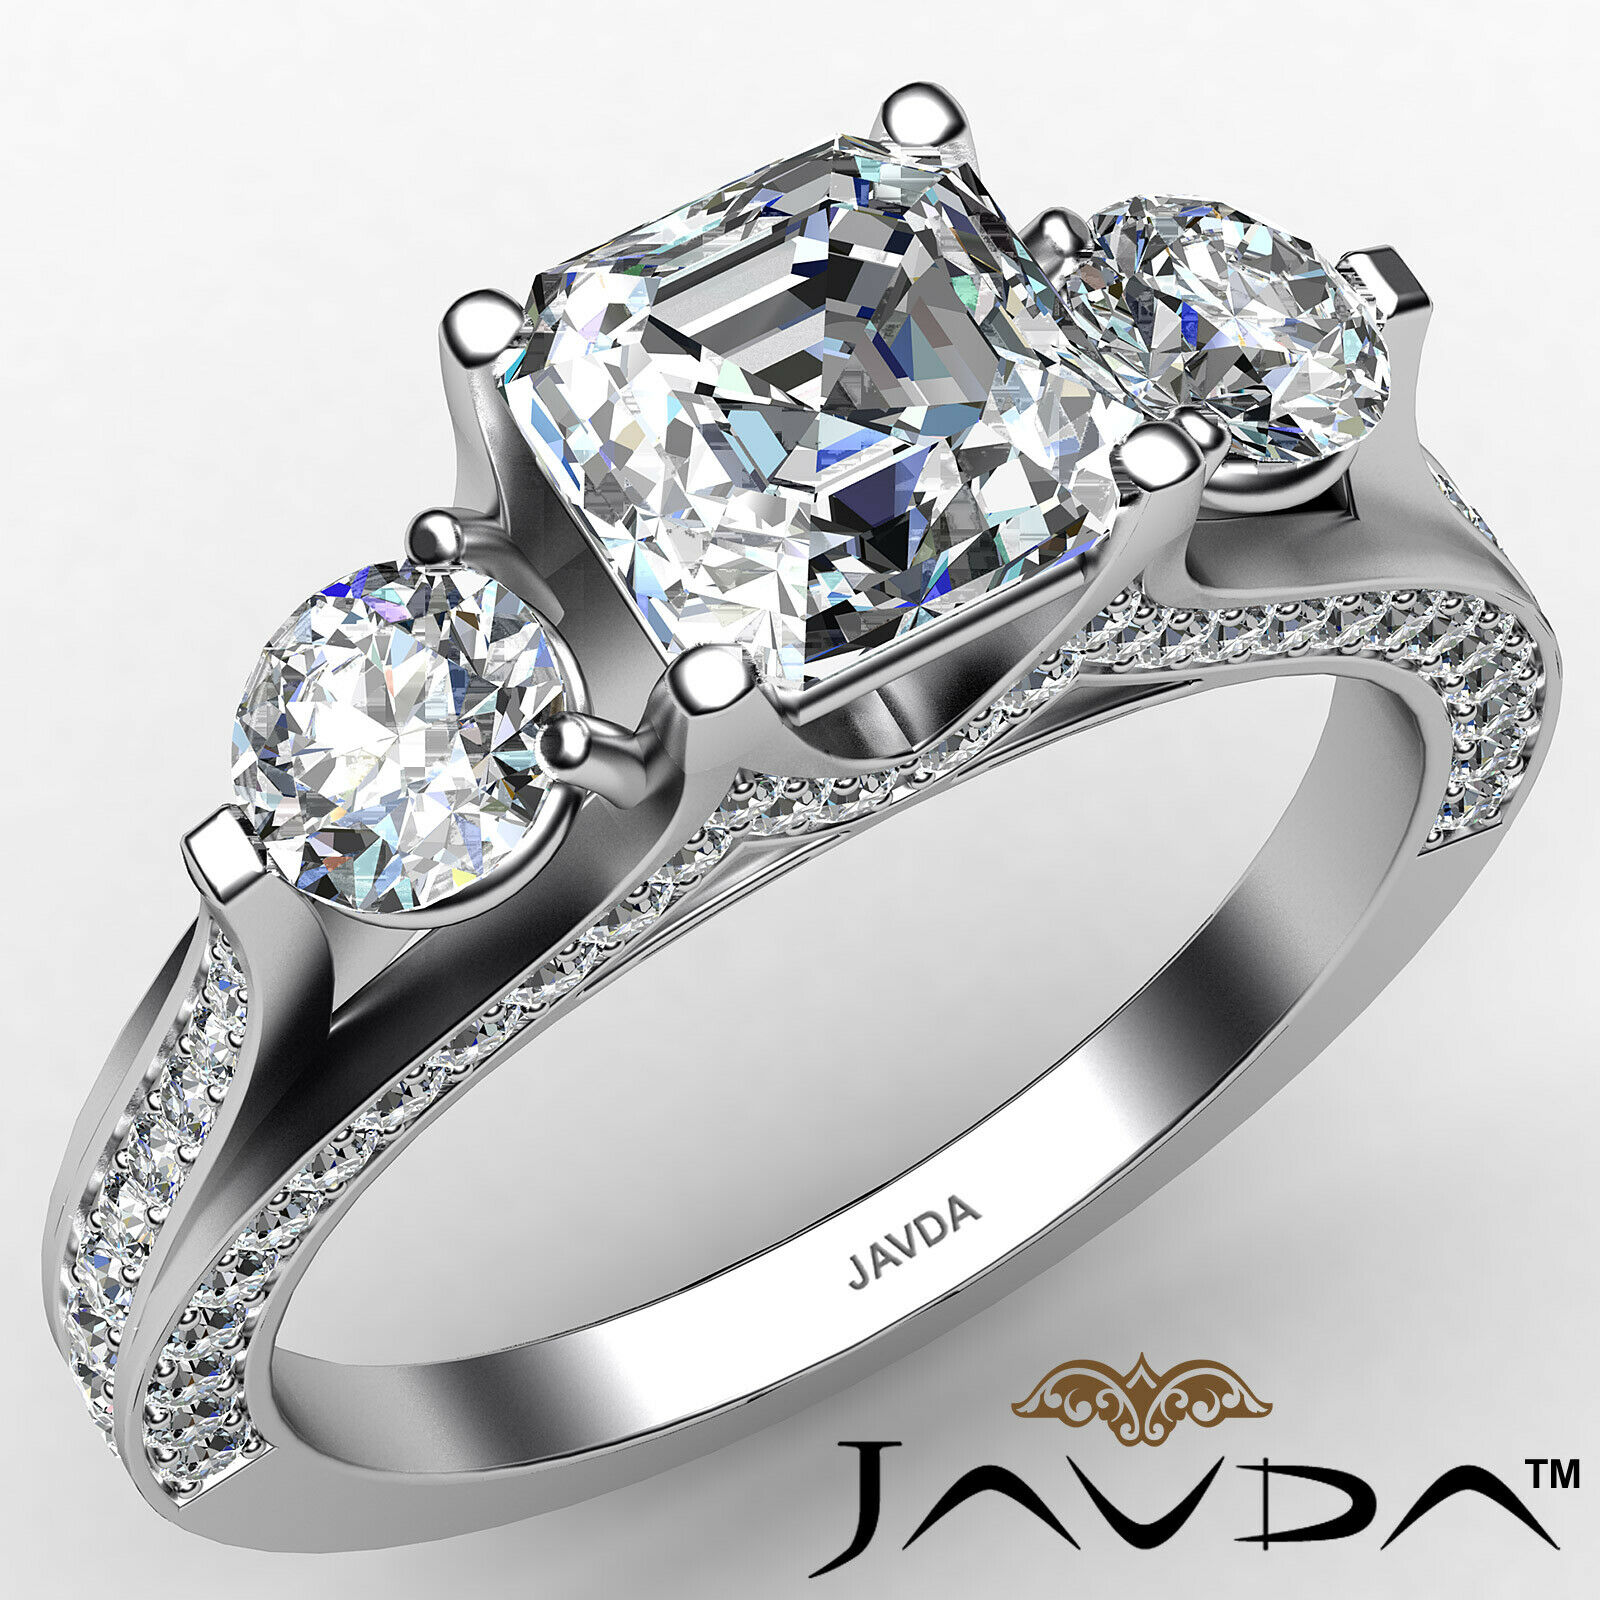 Asscher Diamond Engagement Pave Set 3stone Ring GIA G Color & SI2 clarity 2.1ctw